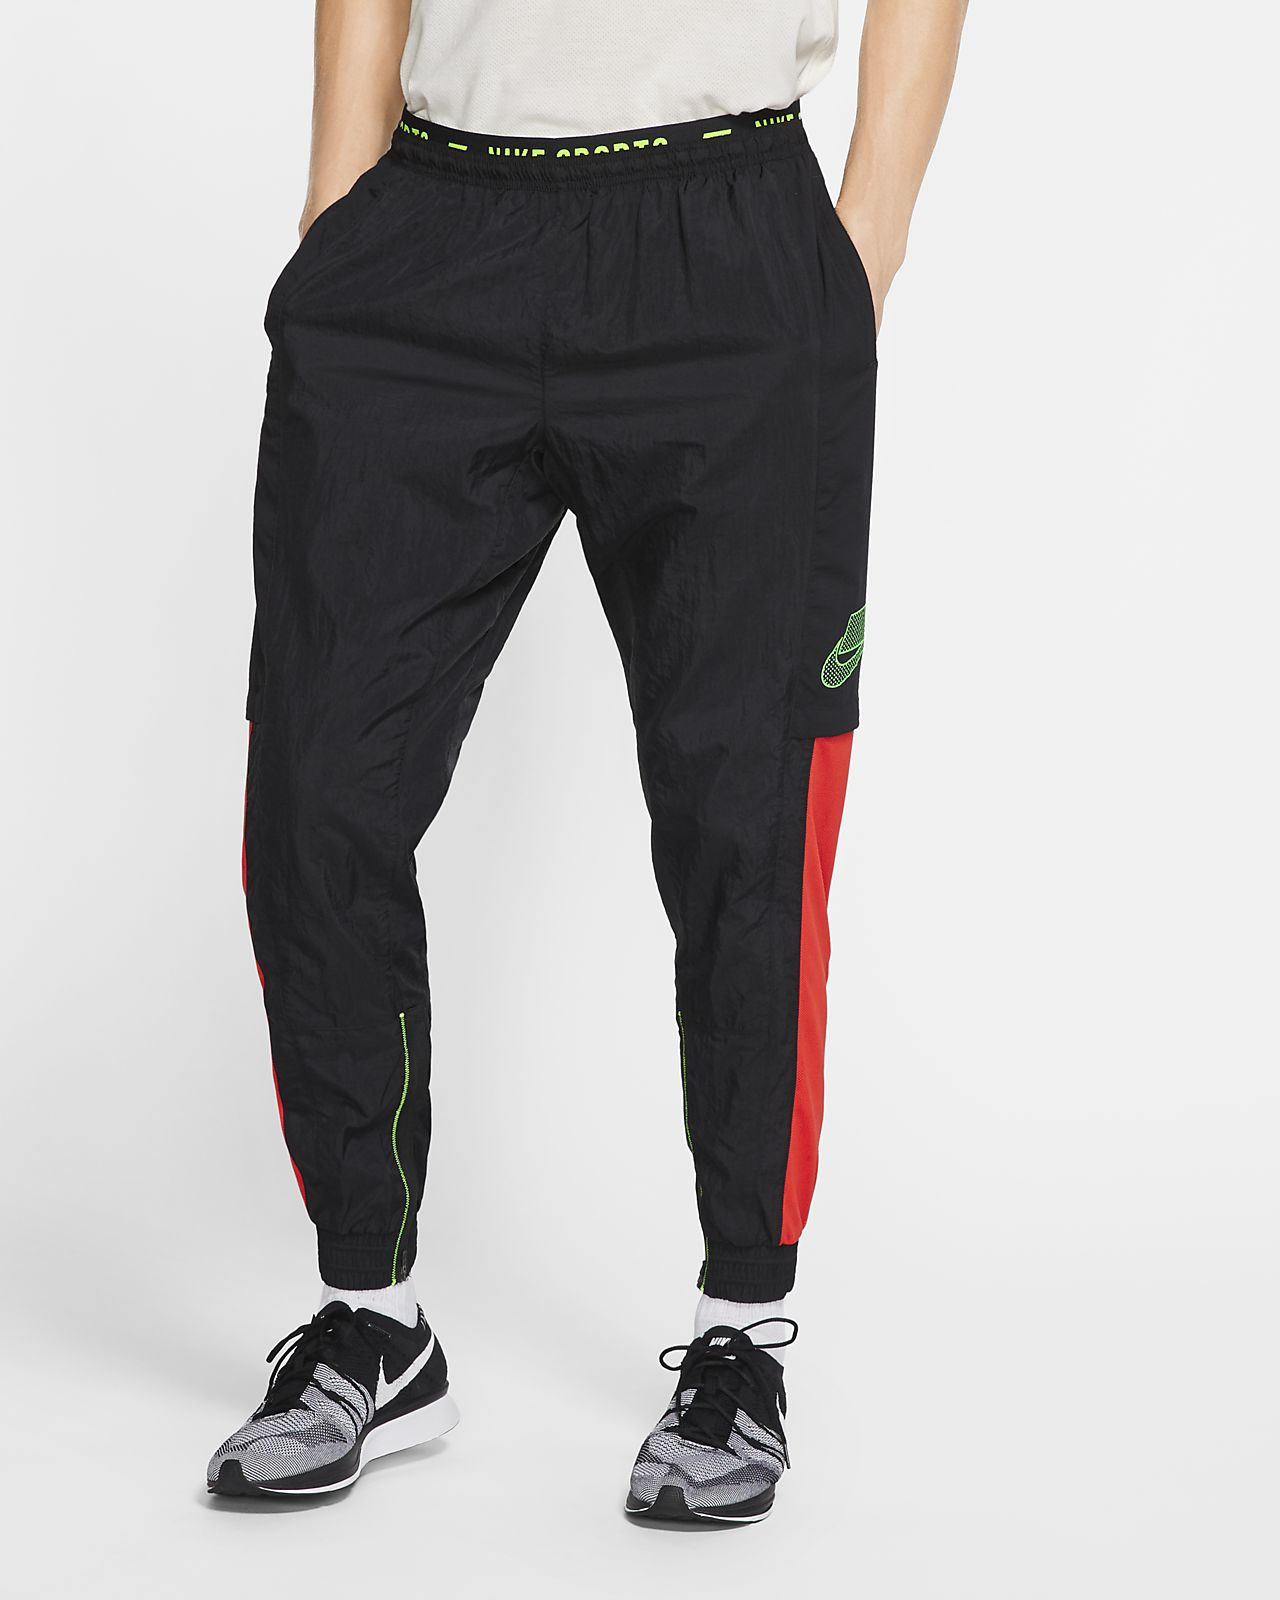 Pantaloni Pant Sports Nike Performance Donna Nero 80wmyvNnOP